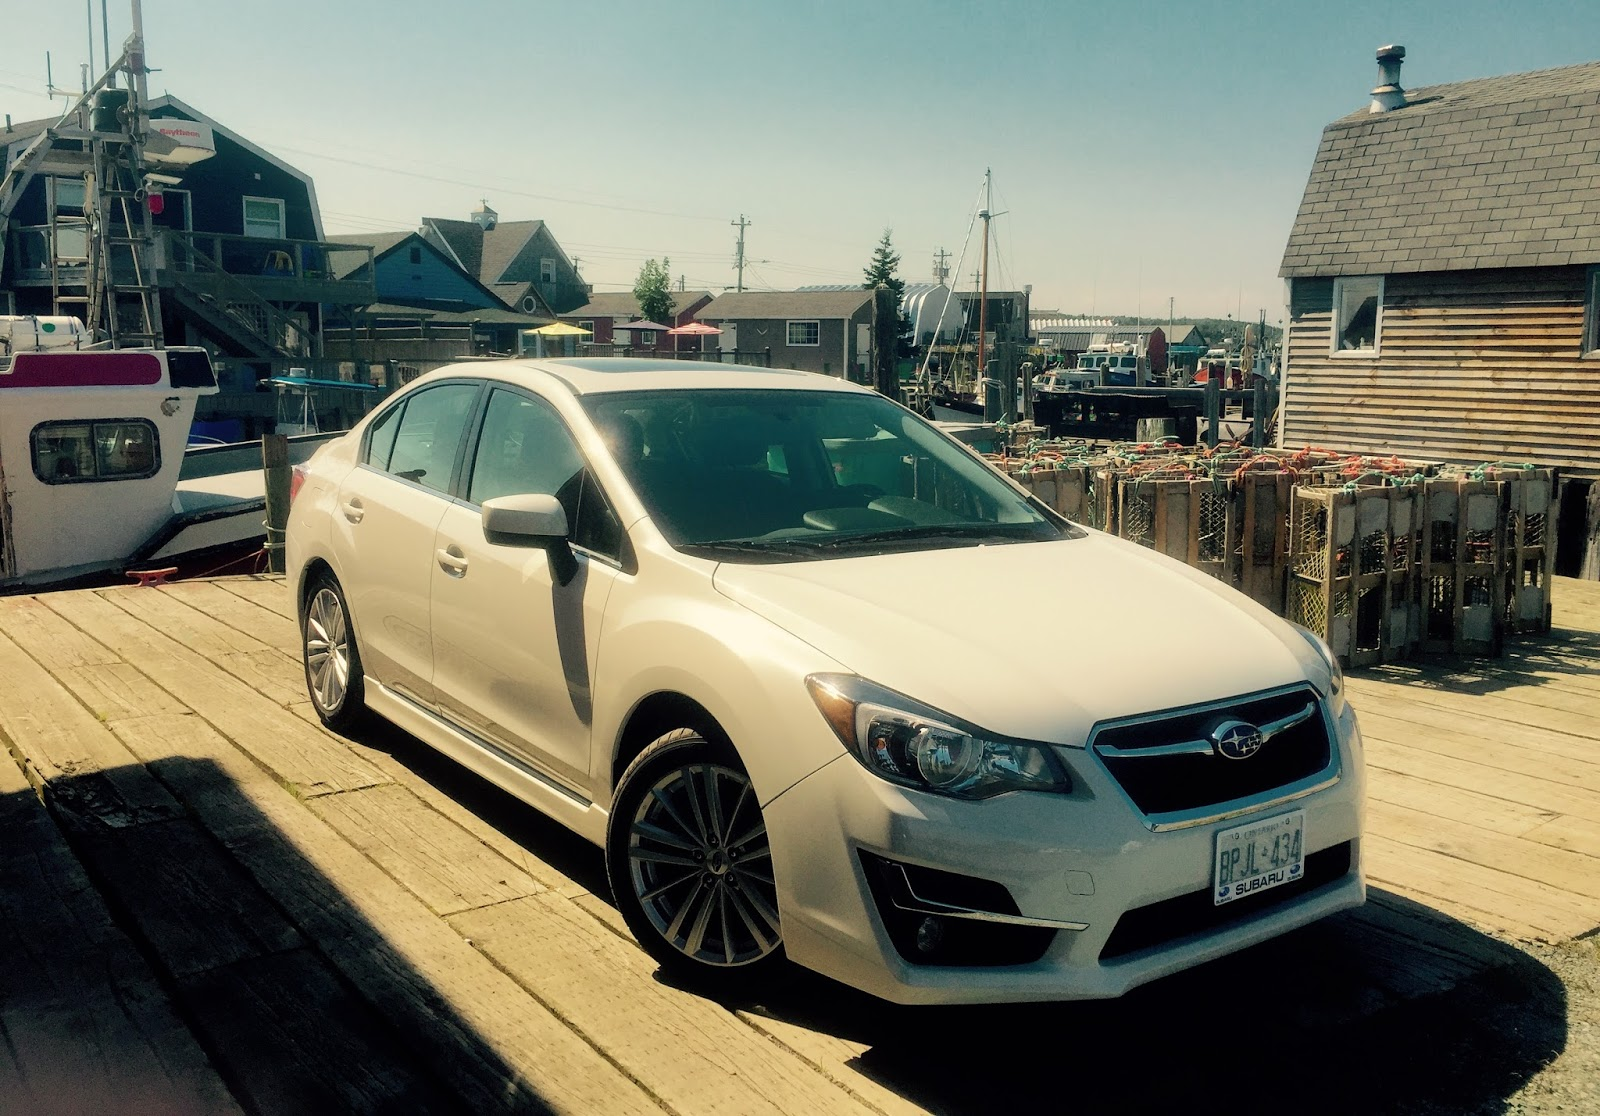 2015 subaru impreza 2.0i sport review – you're going to buy an xv